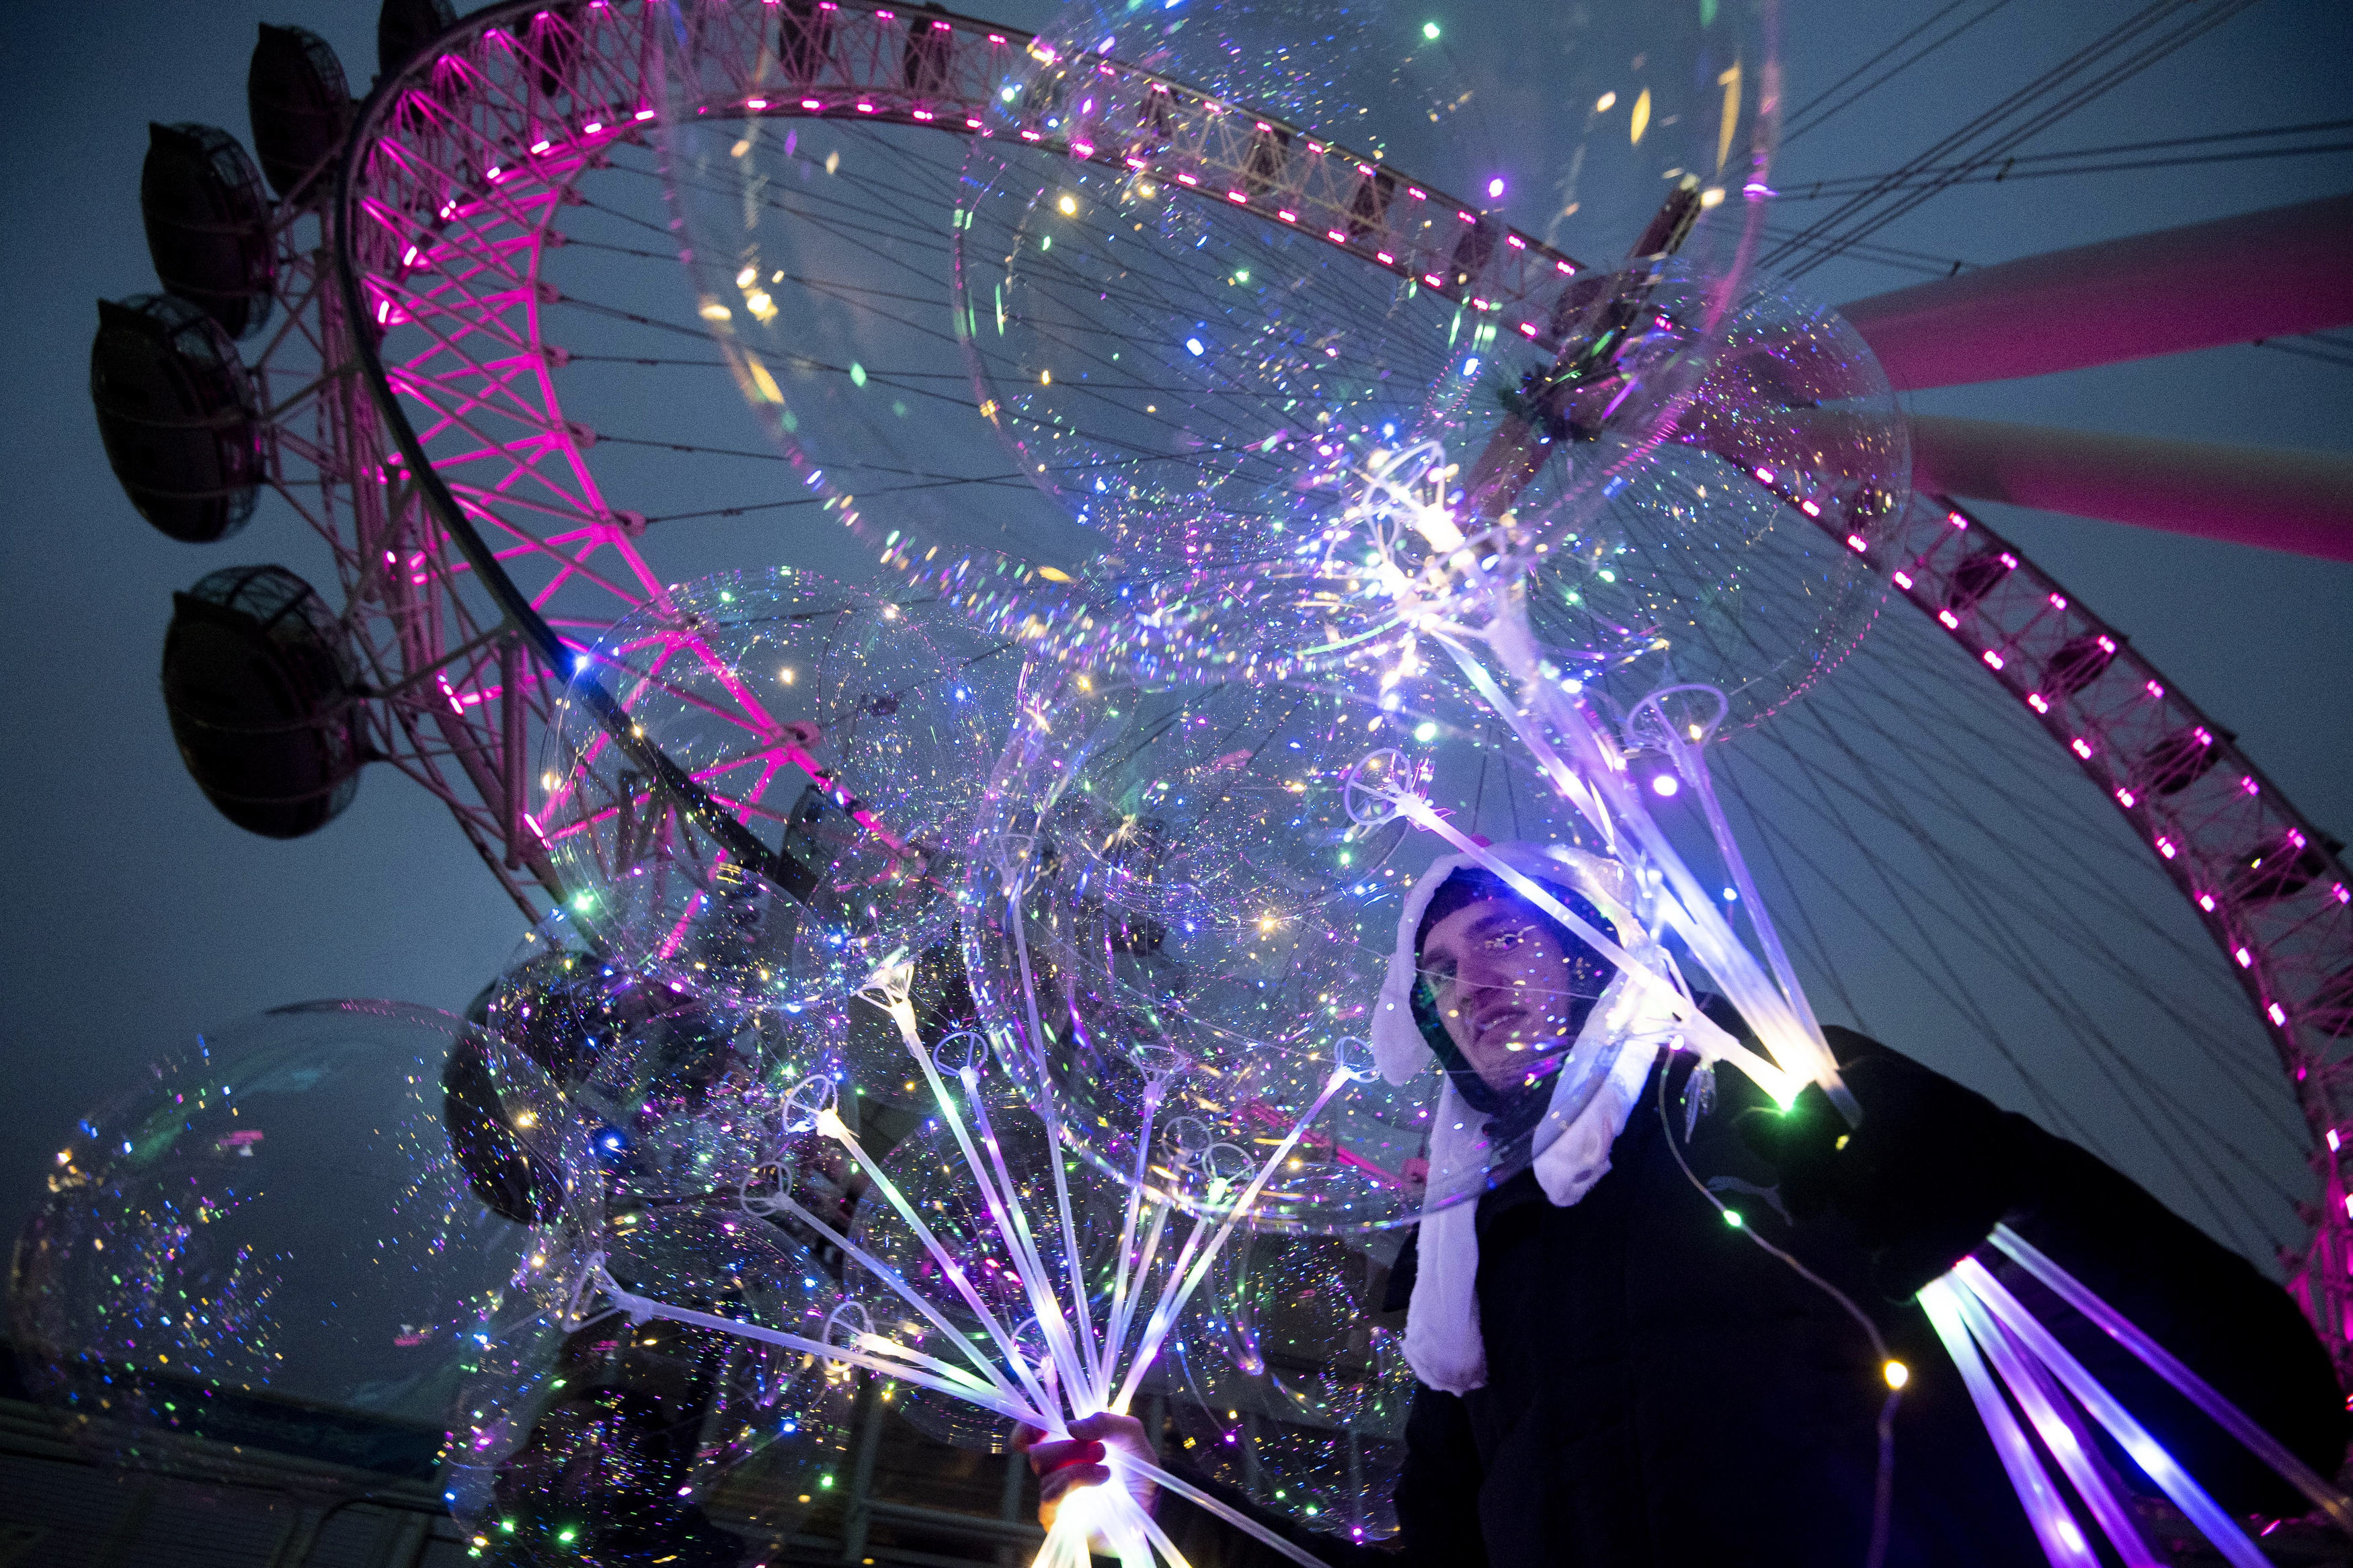 A man holds illuminated balloons, standing in front of the London Eye tourist sightseeing wheel in London, Monday Dec. 28, 2020.  Millions more people moved to harsher coronavirus restrictions as the new tier changes came into force over much of England. (Victoria Jones/PA via AP)